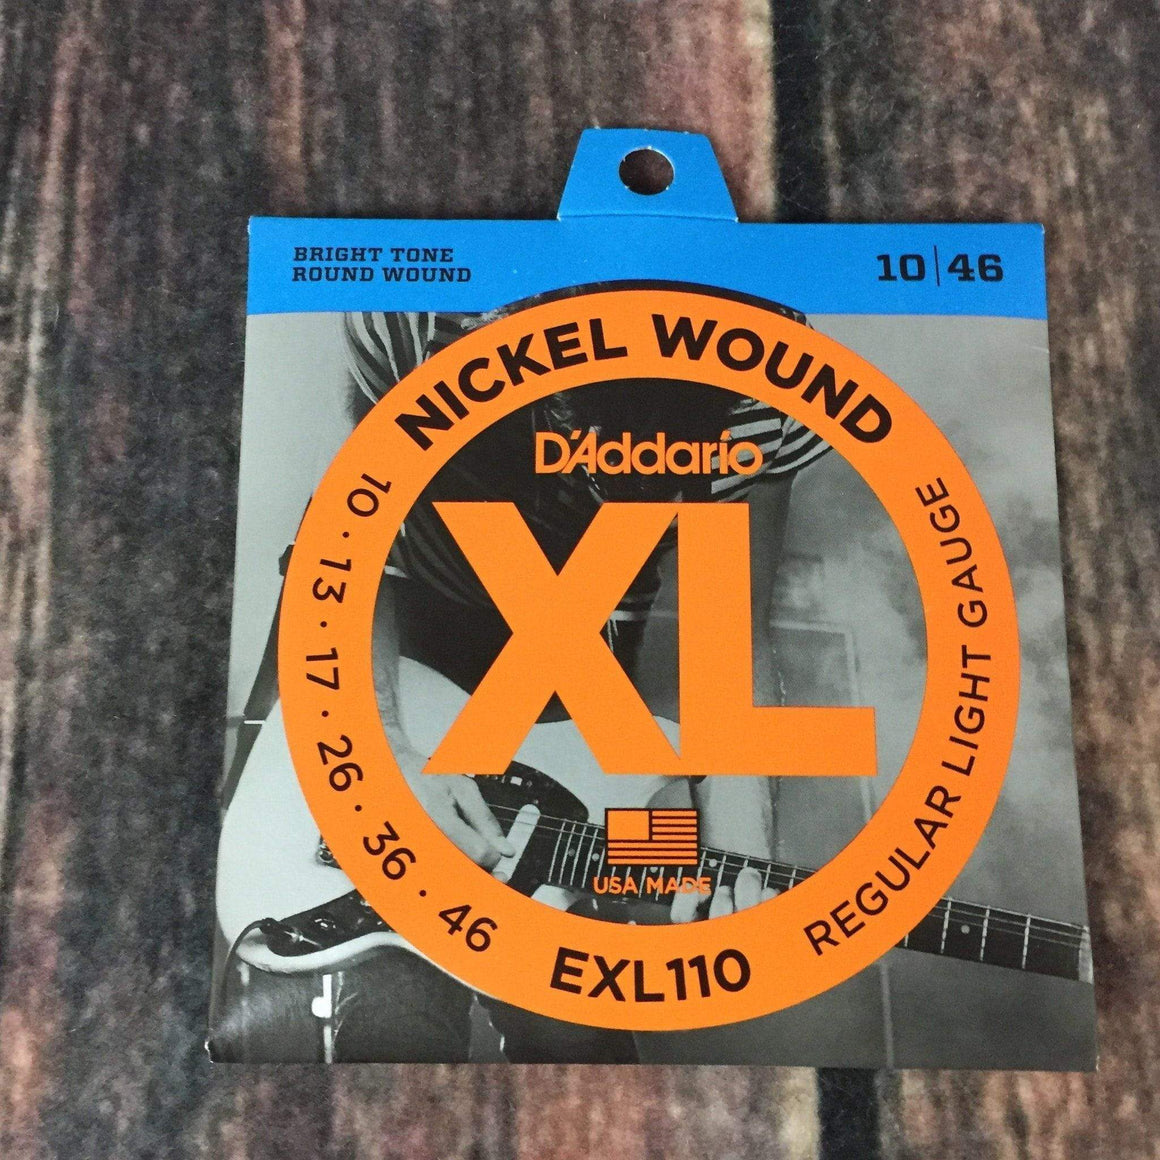 D'Addario Electric Guitar Strings D'Addario EXl110 Light Electric Guitar Strings